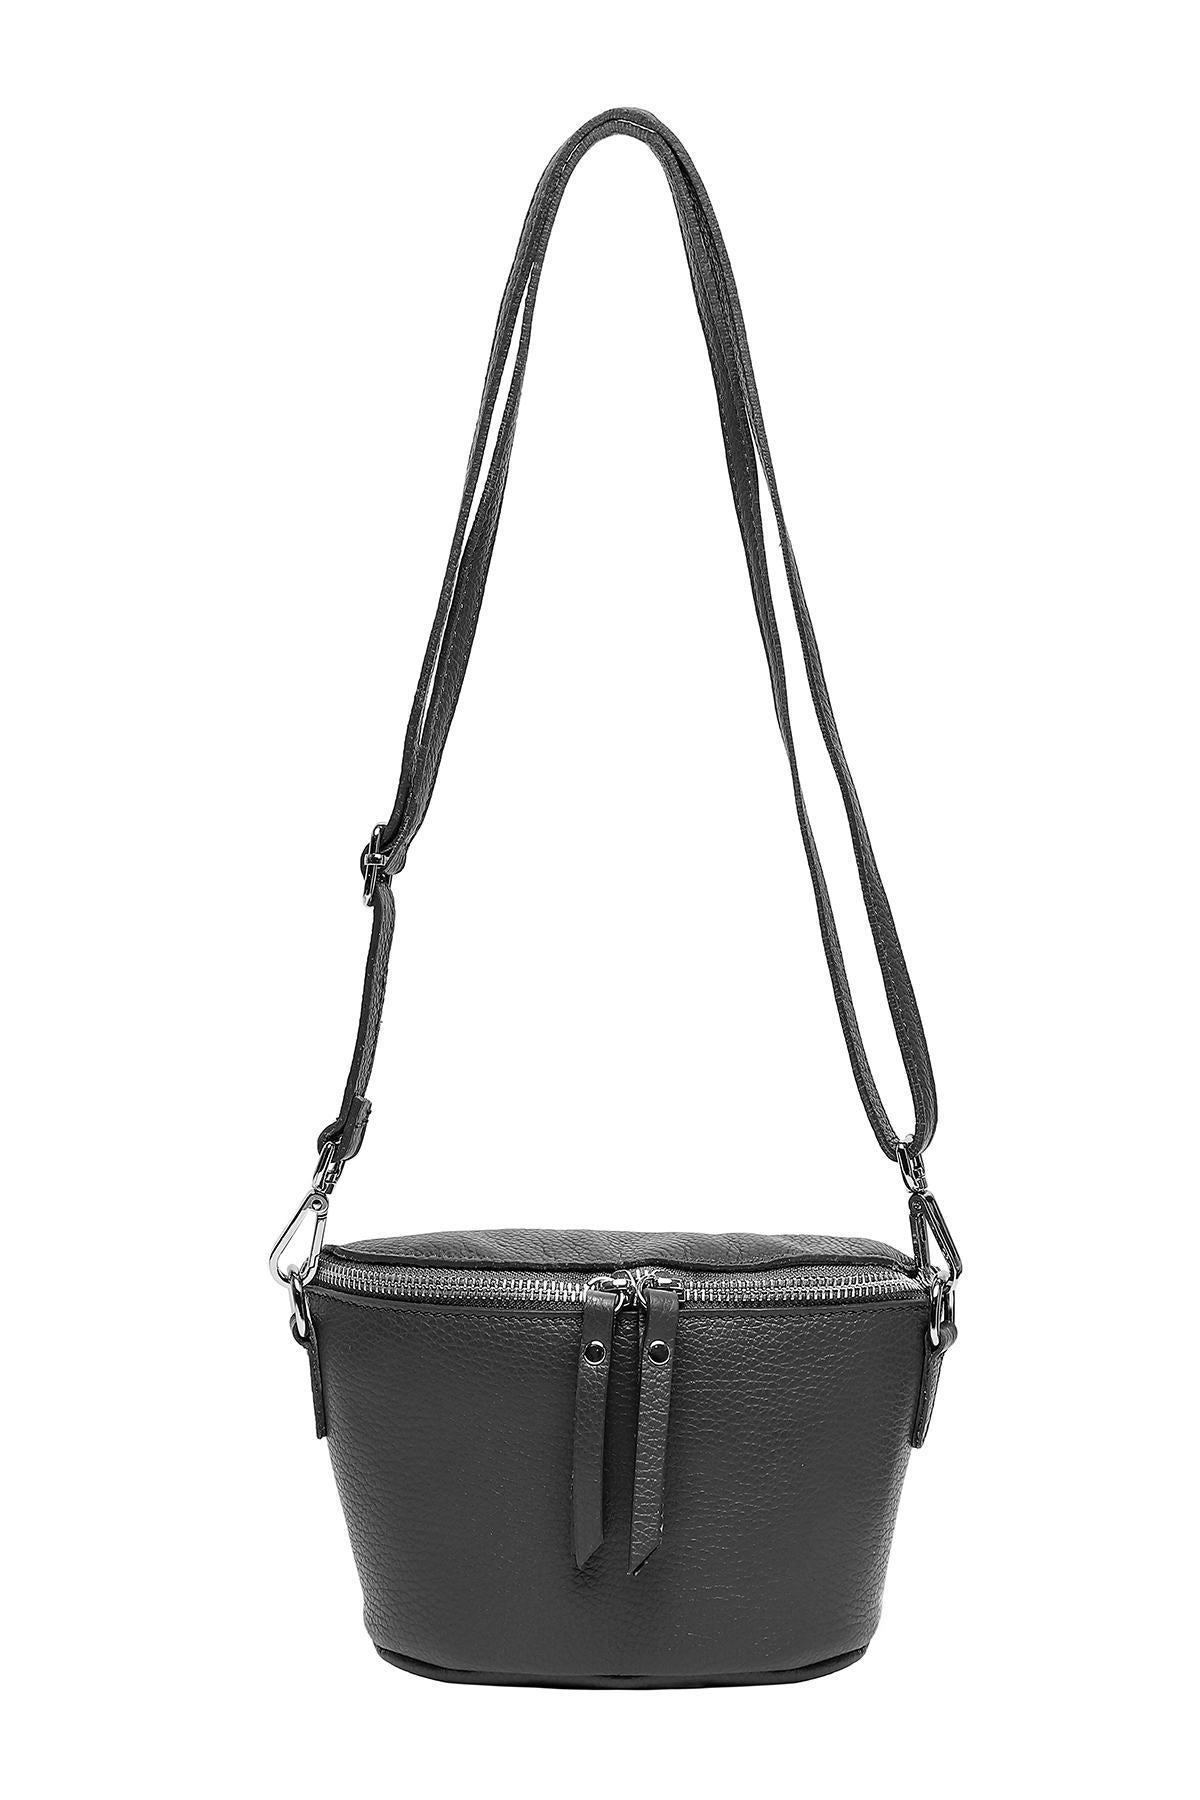 Cherry Paris - Emmanuelle bag black